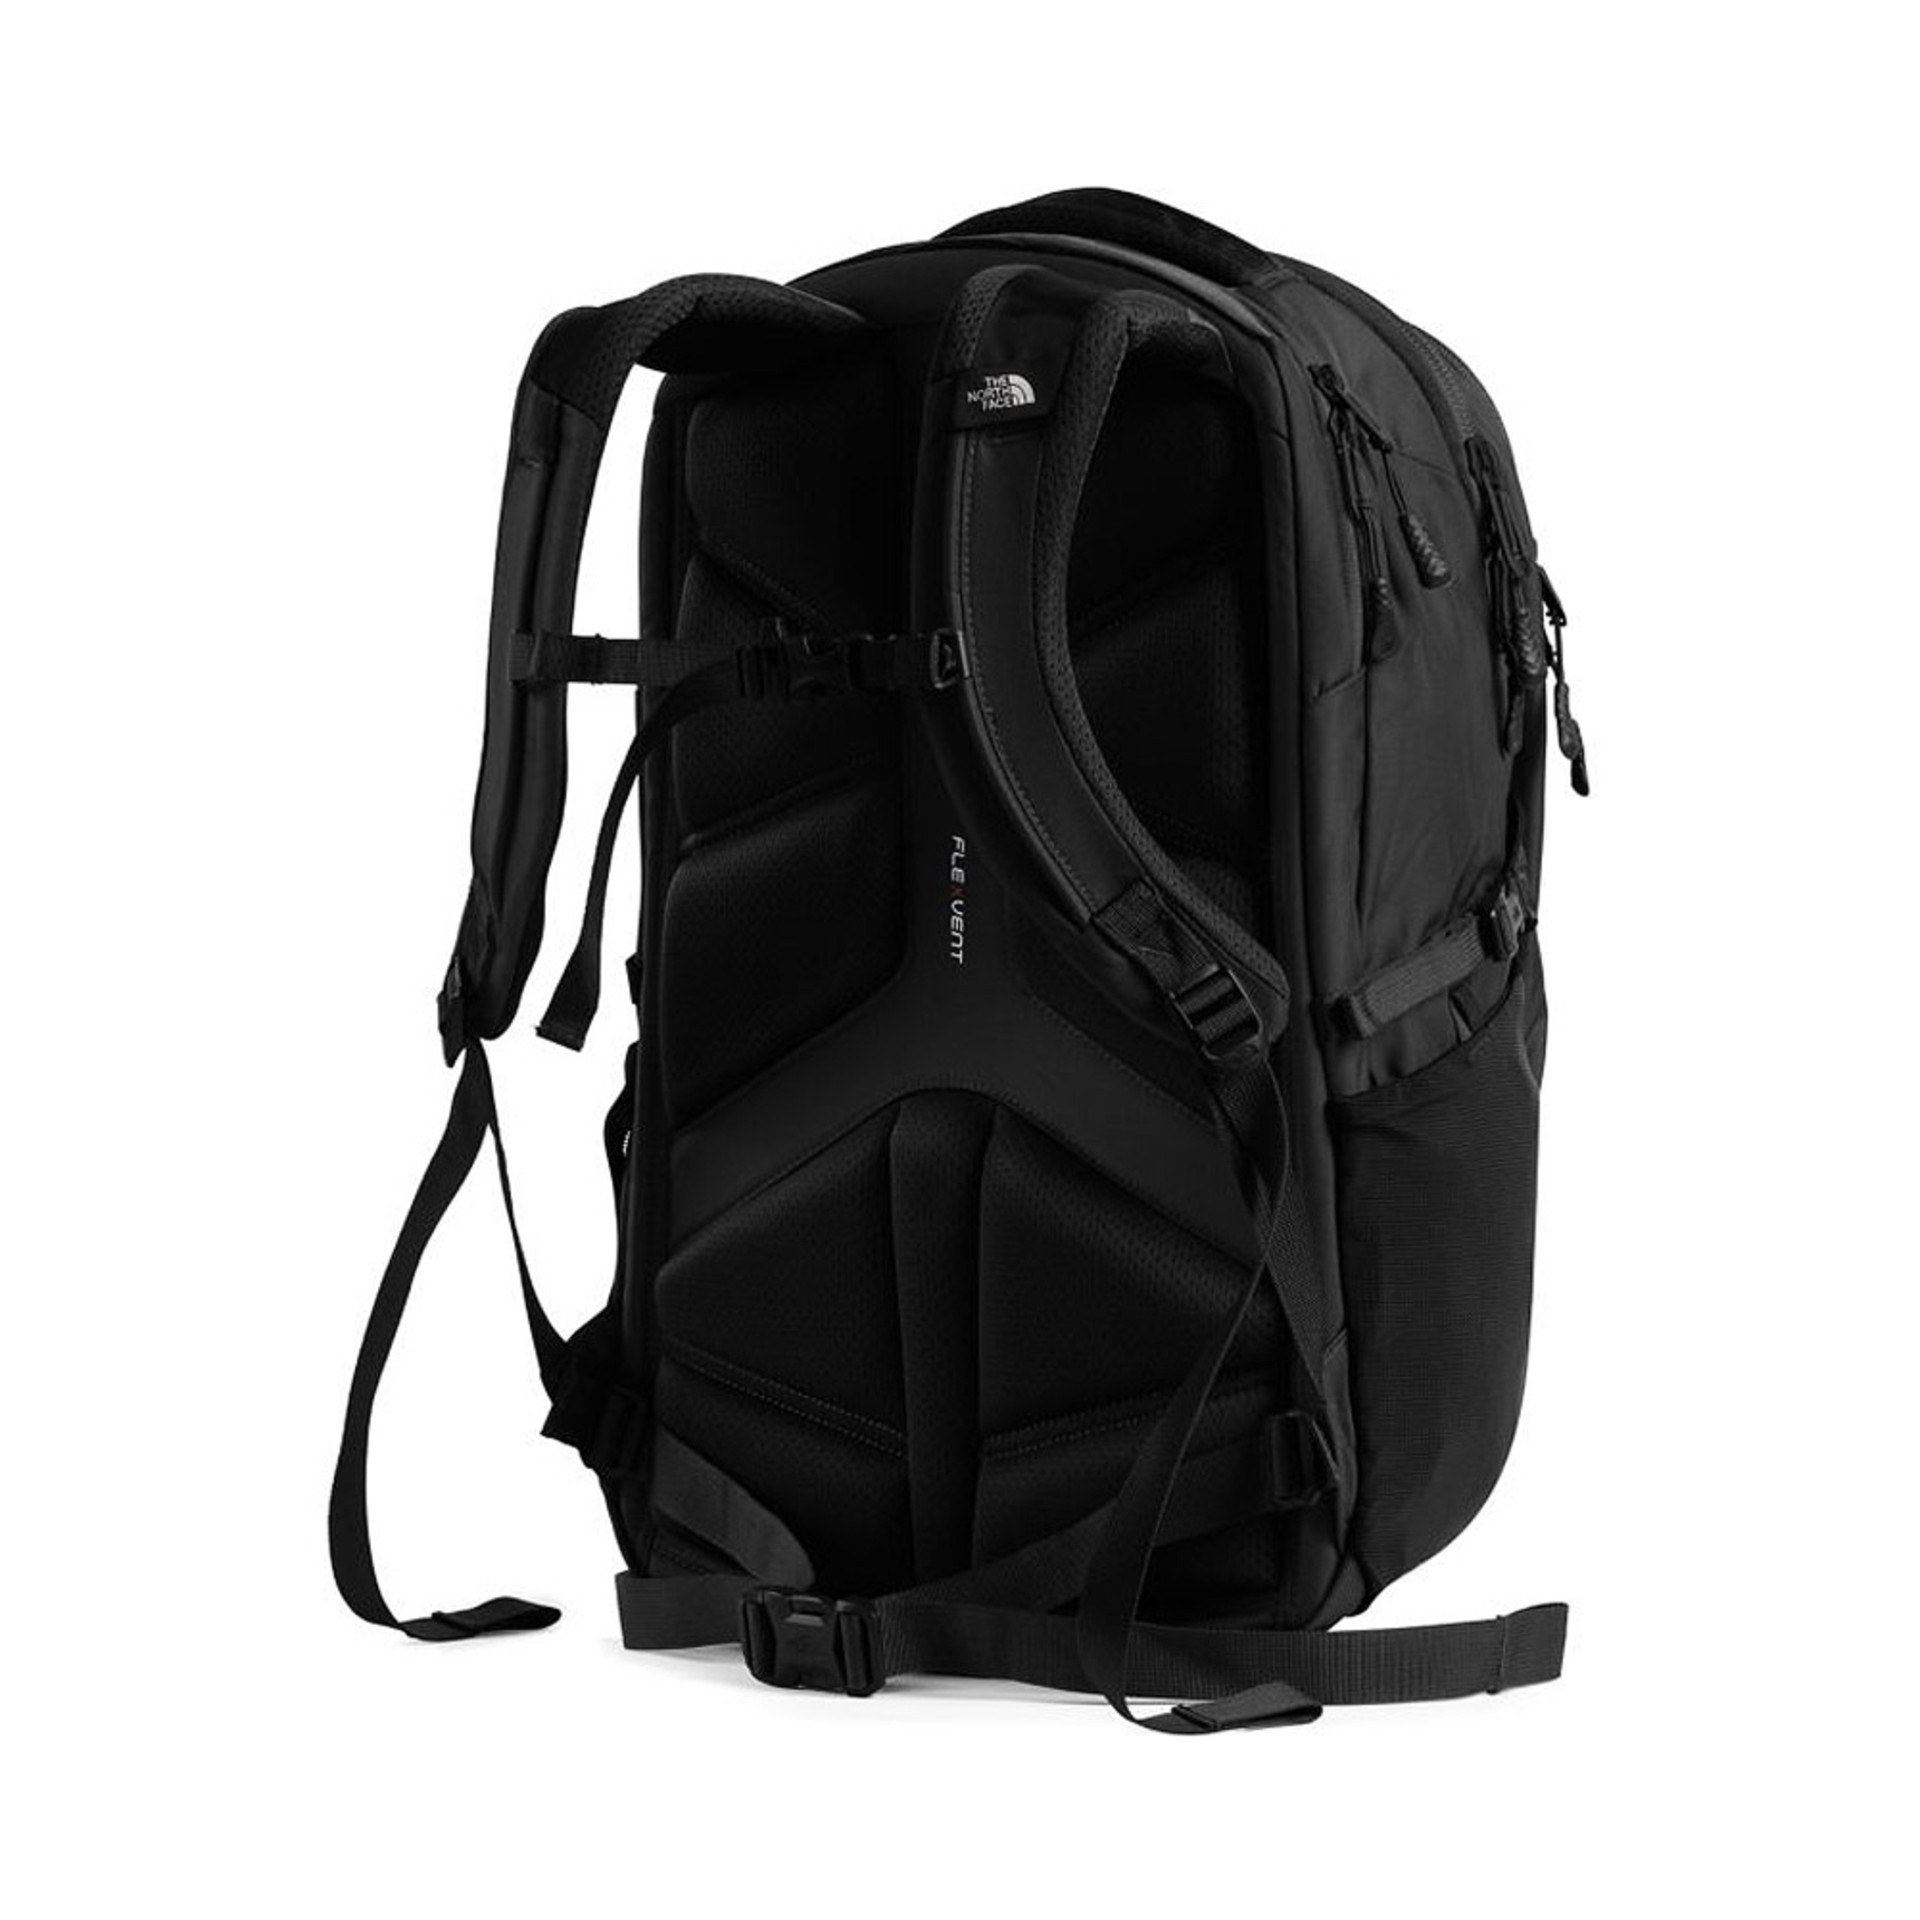 The North Face Women's Borealis Backpack Black Back